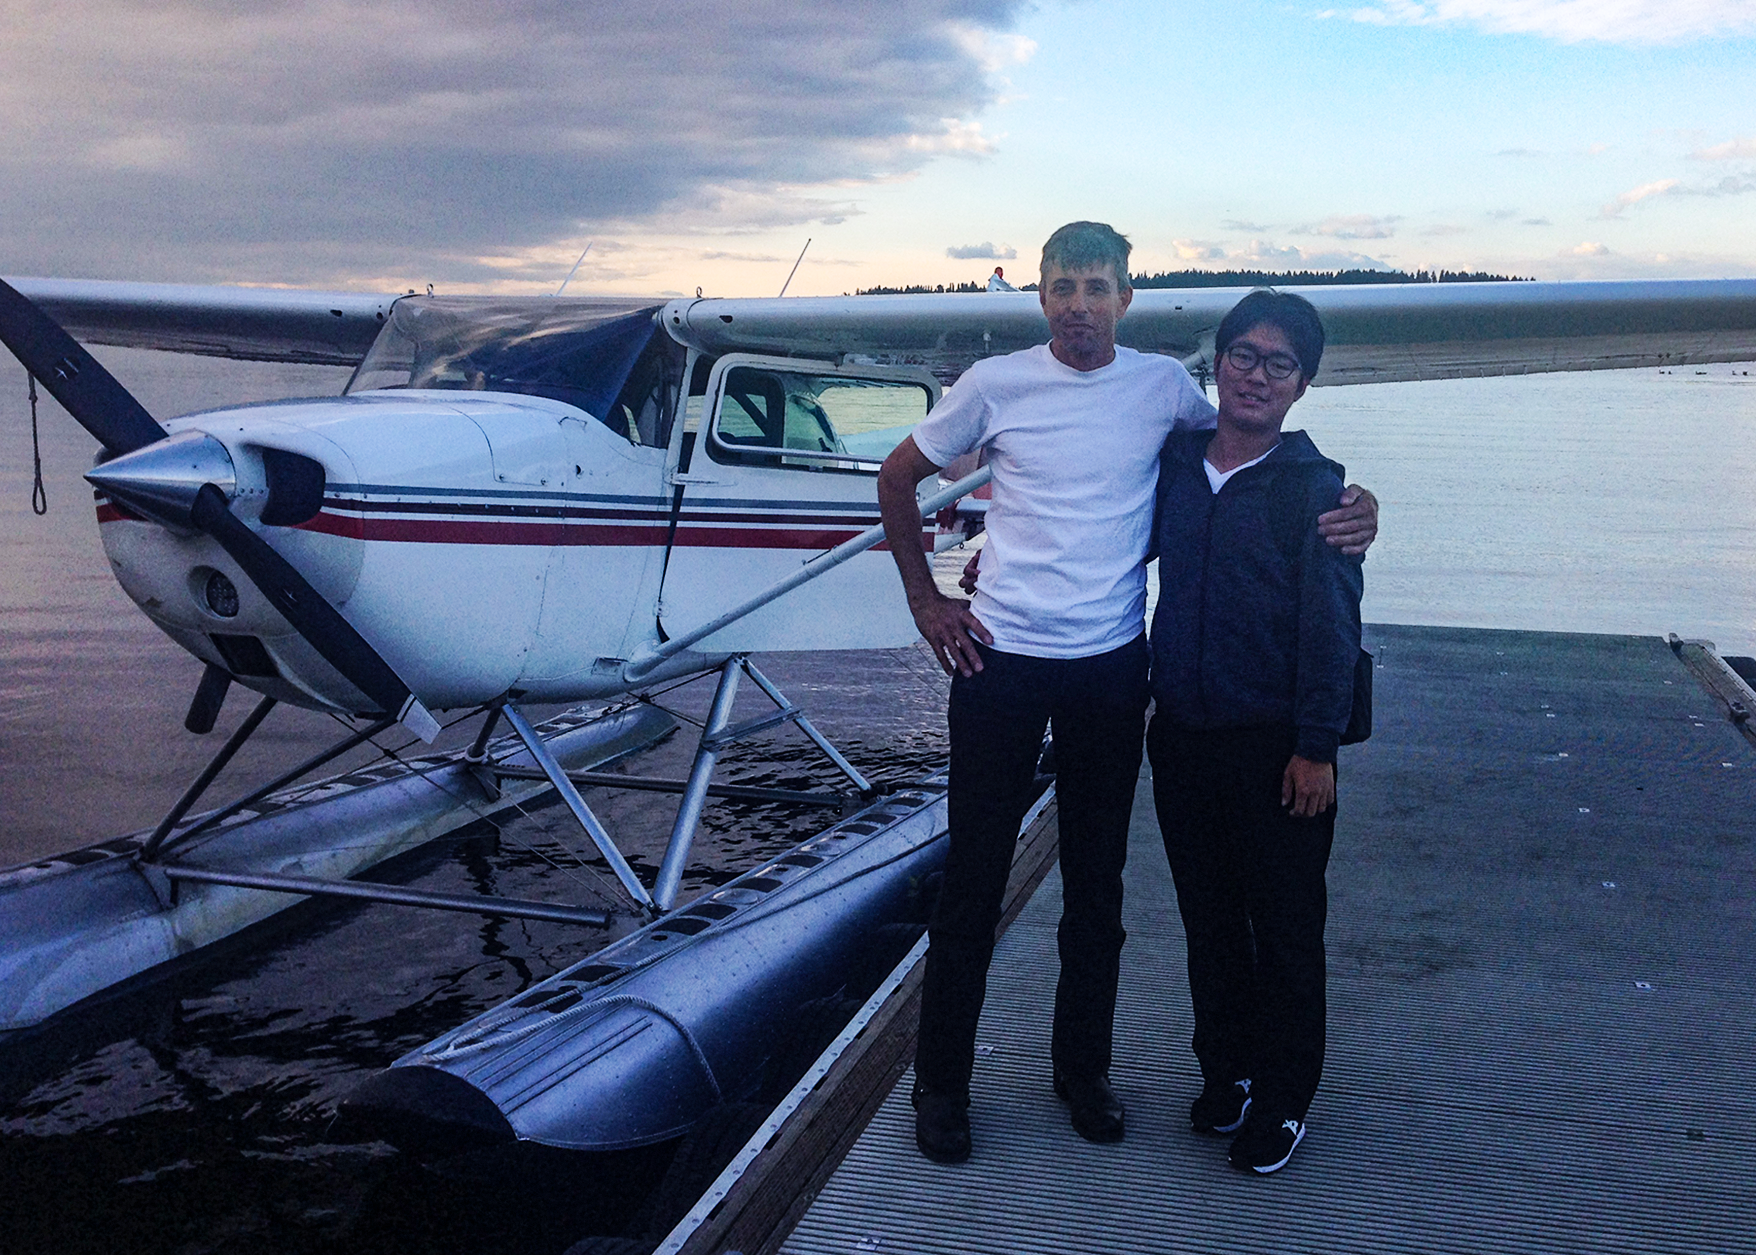 James Young, Bob's crew-mate on seaplane flights, gave Masahiro a wonderful sunset seaplane flight. James owns the  Seaplane Scenics  which offers land and seaplane instruction, and also gives scenic flights of the area